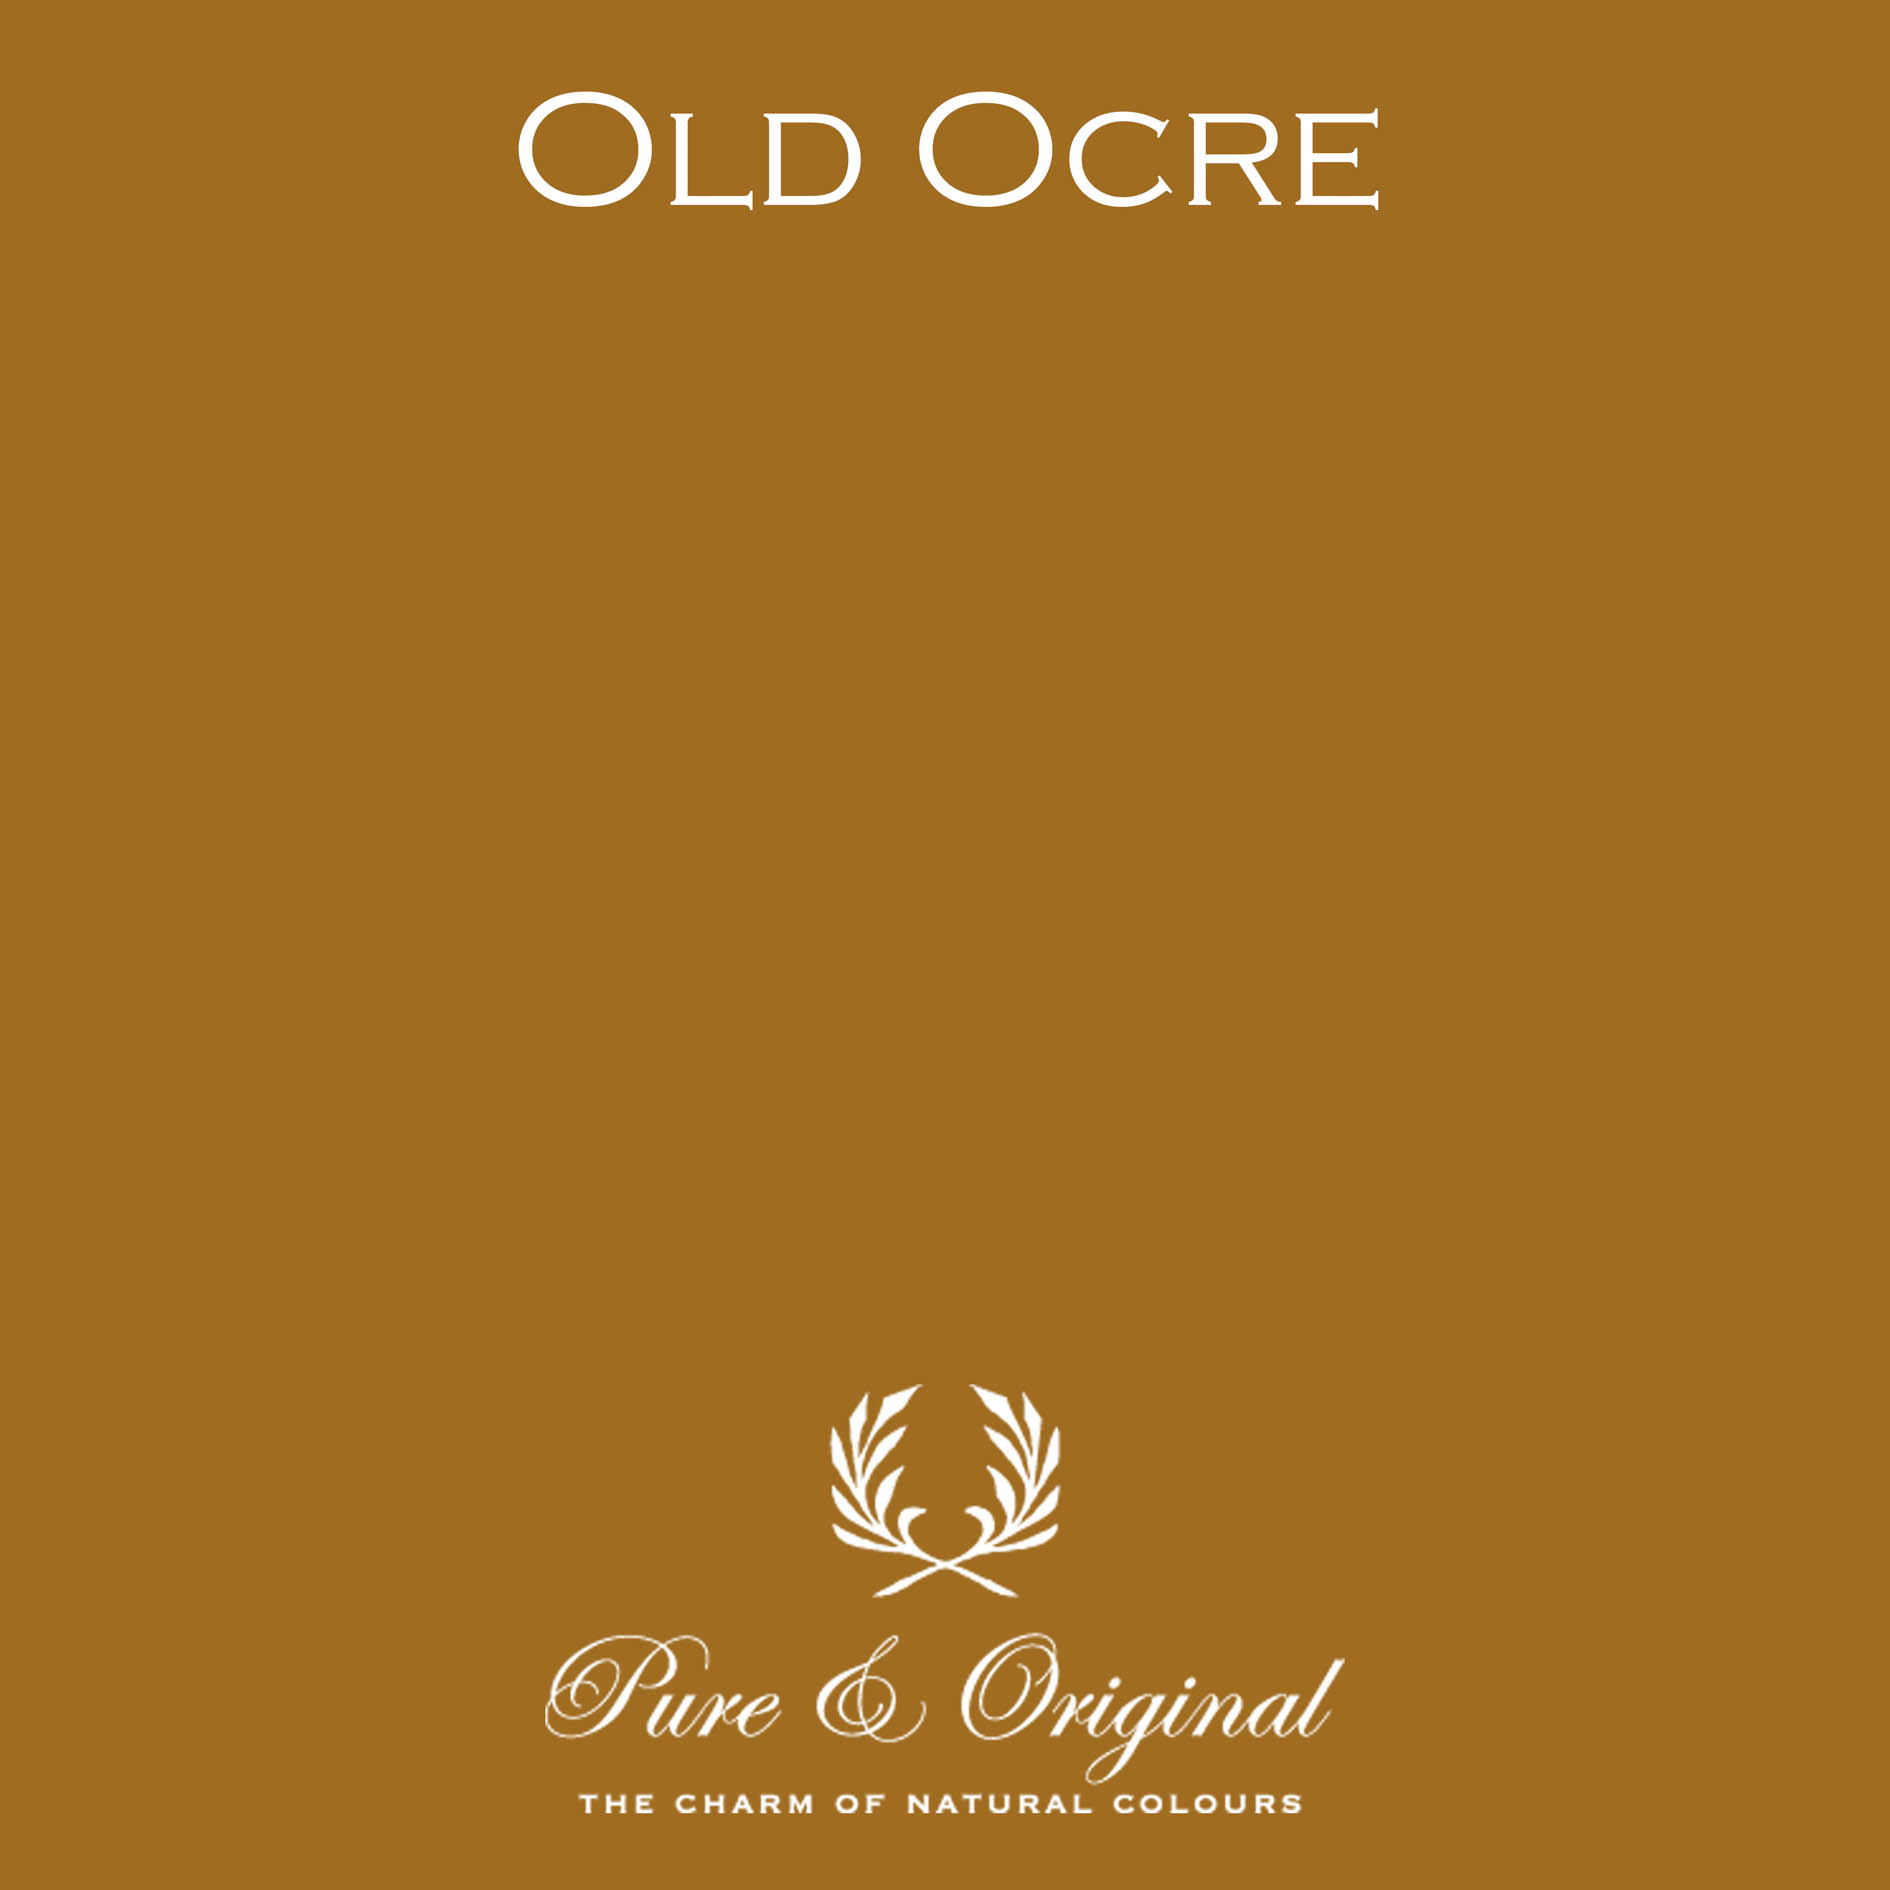 Pure & Original Old Ocre